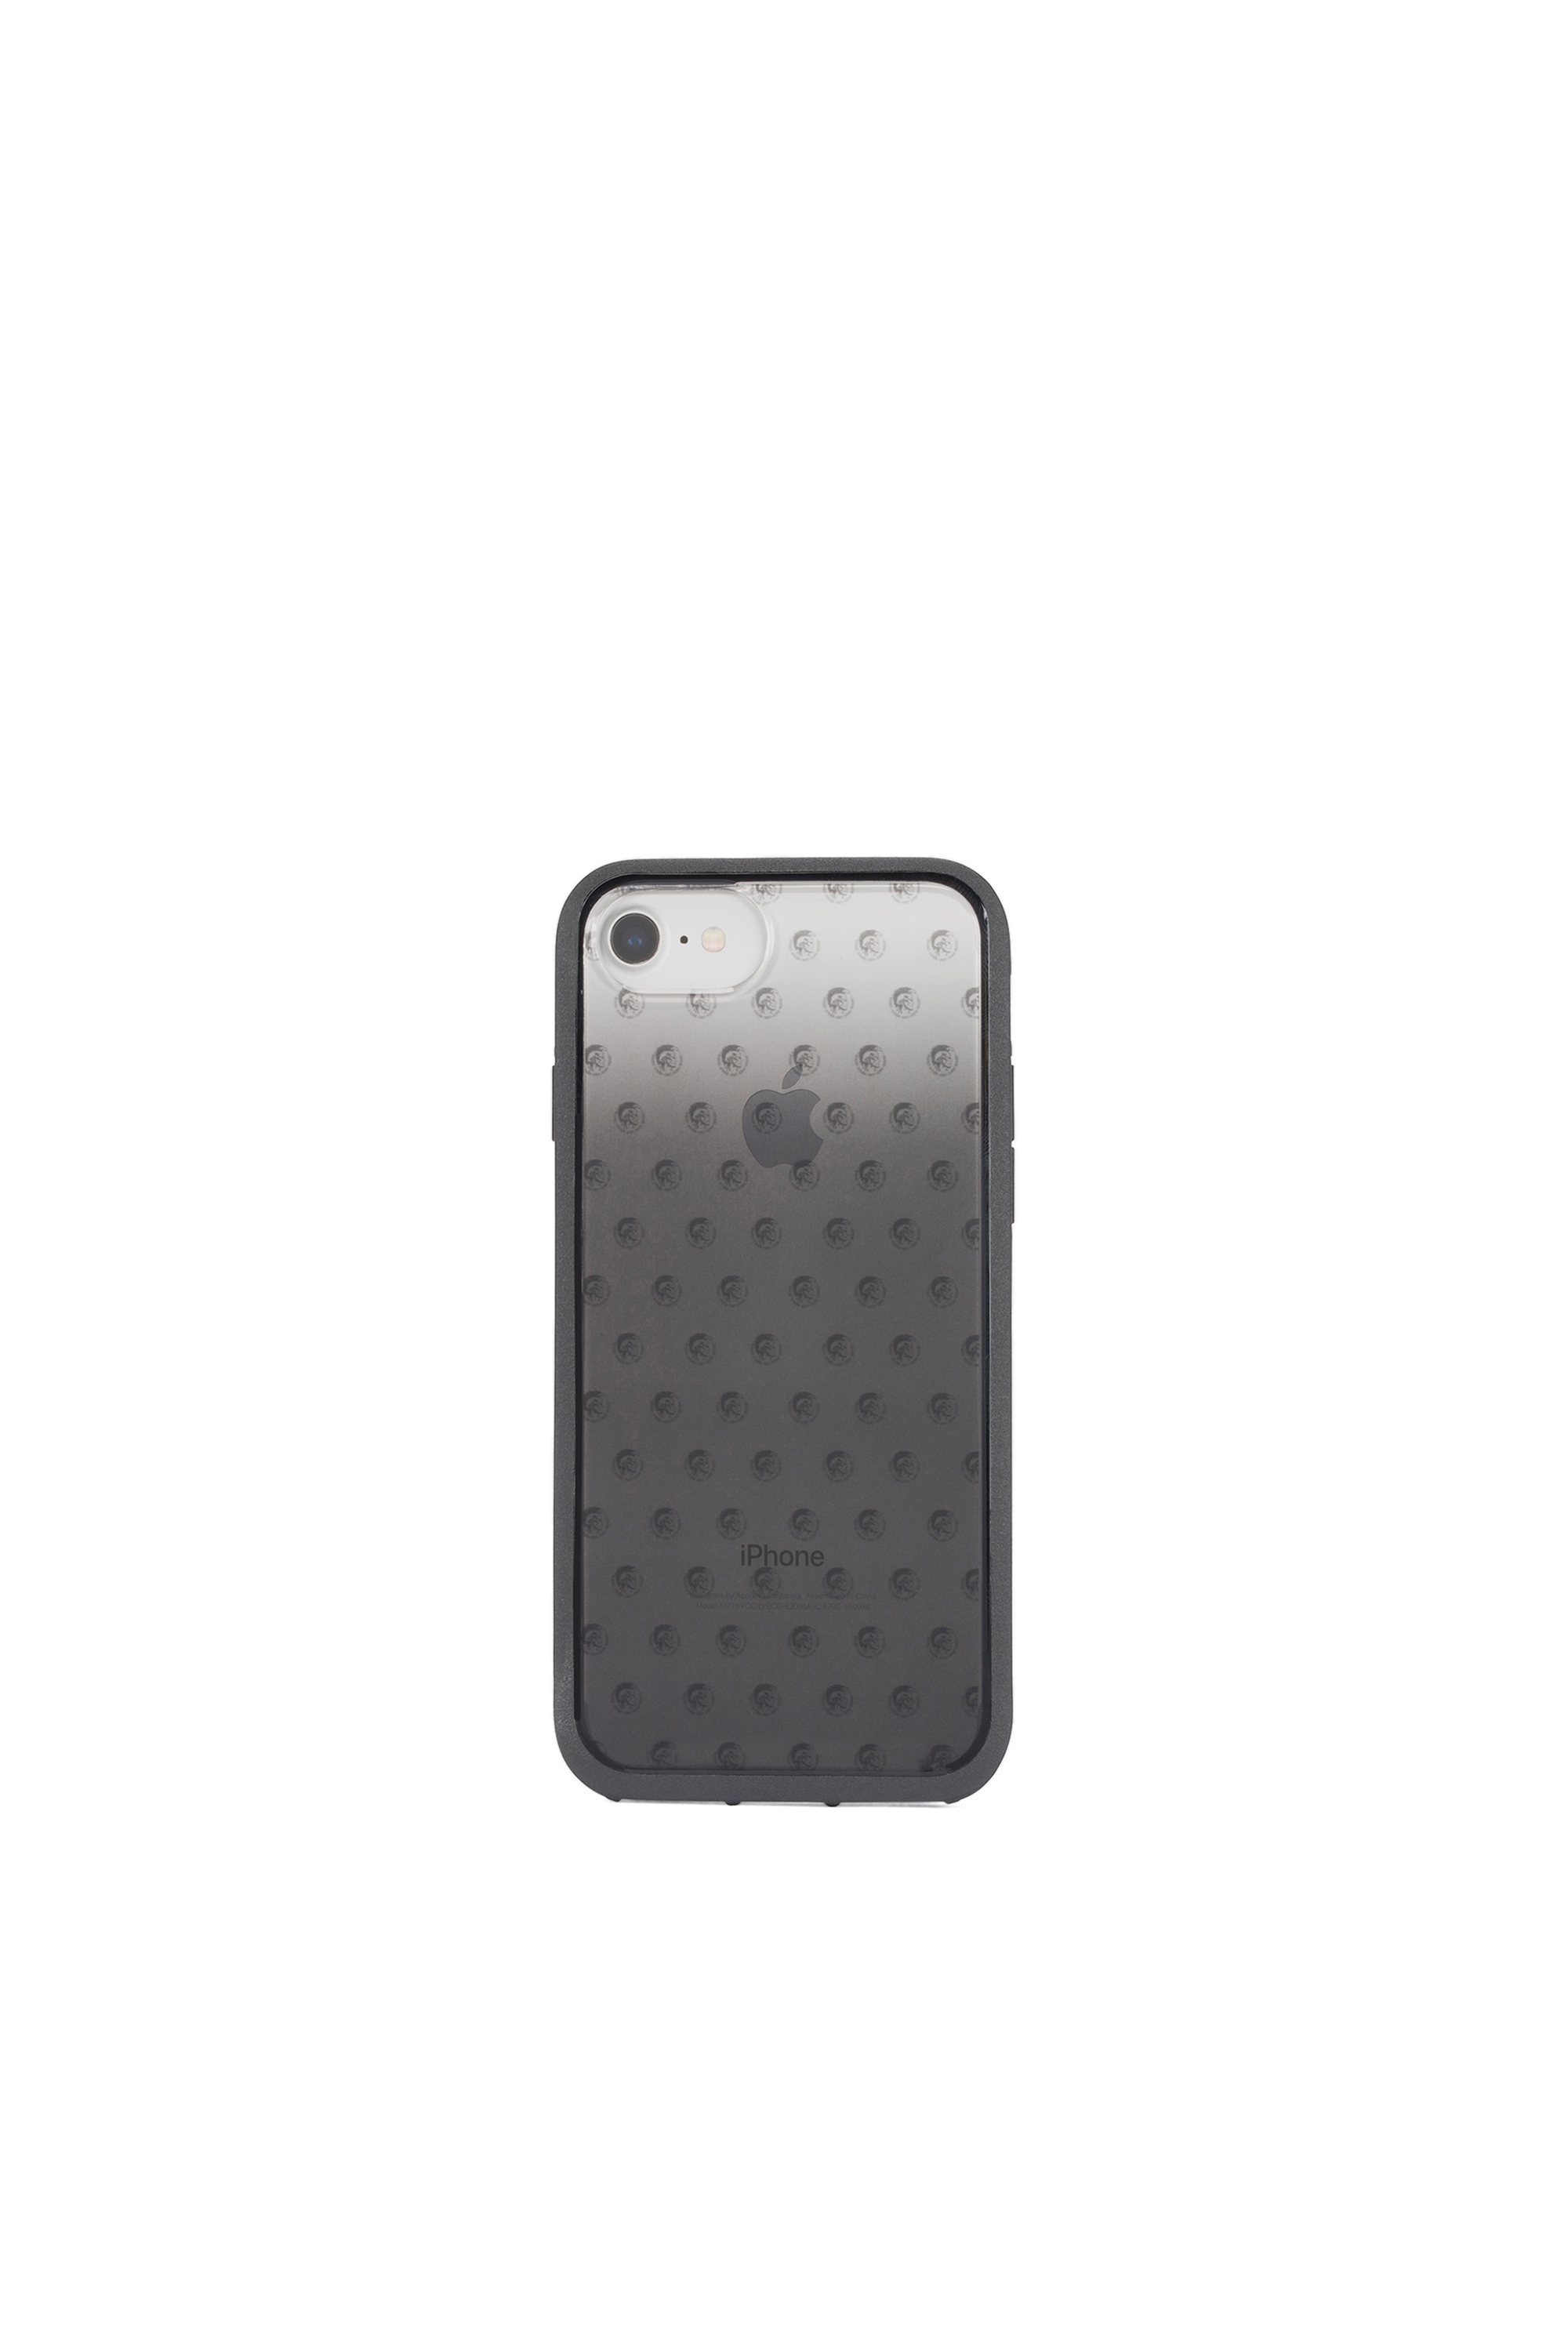 Diesel - MOHICAN HEAD DOTS BLACK IPHONE 8/7/6s/6 CASE,  - Cases - Image 4